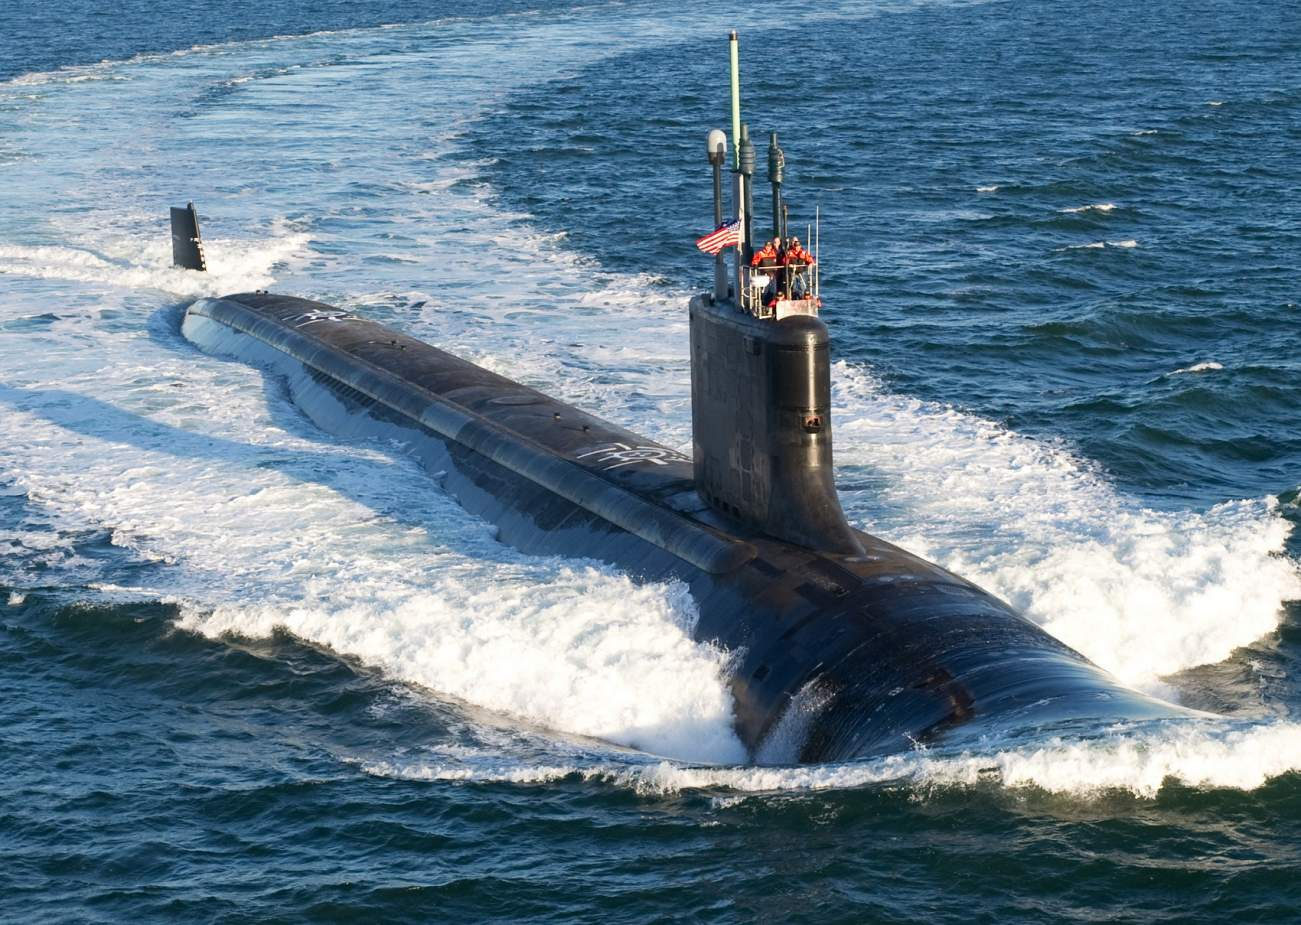 Virginia vs. Yasen: What Happens if the World's Two Best Submarines Went to War?